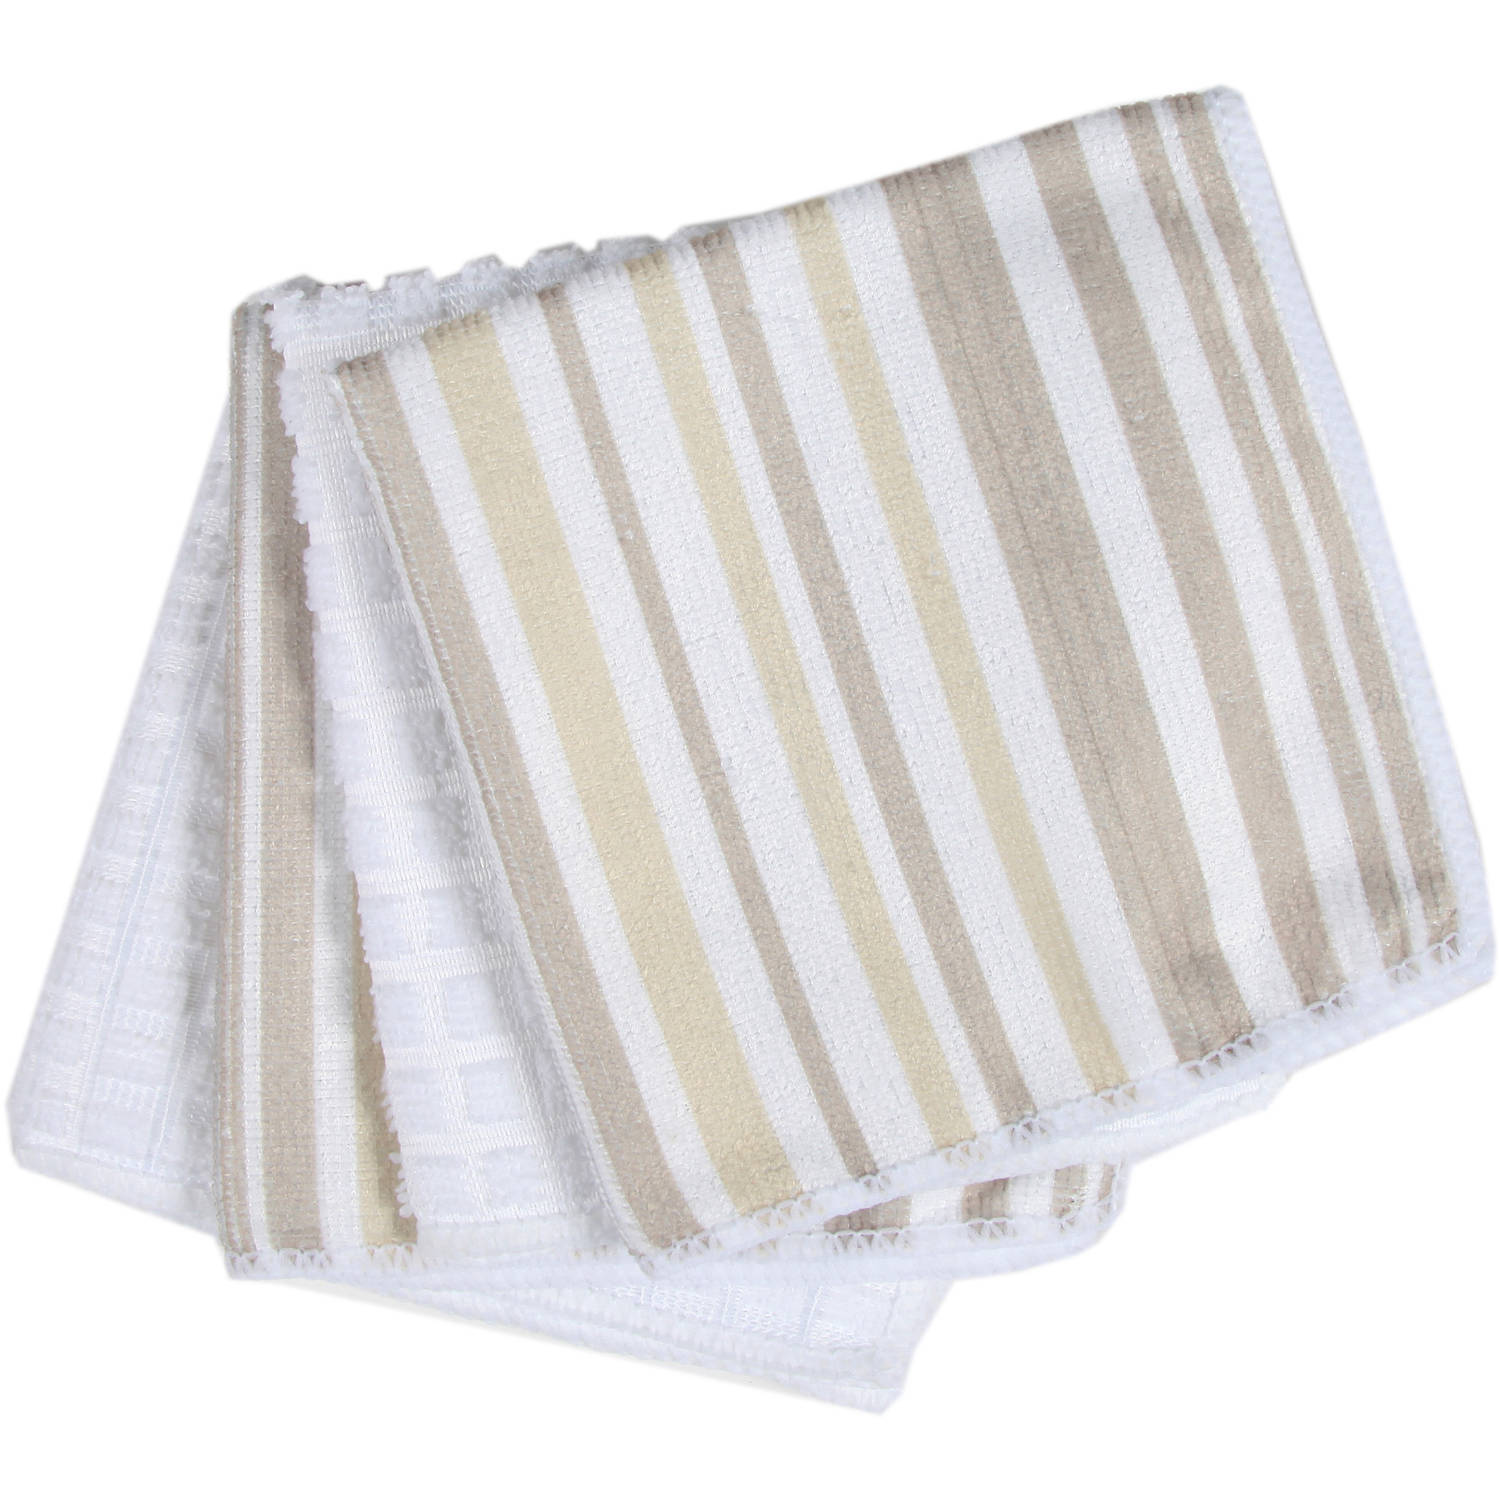 "Hotel 4-Pack 12"" x 12"" Microfibre Dish Cloths"